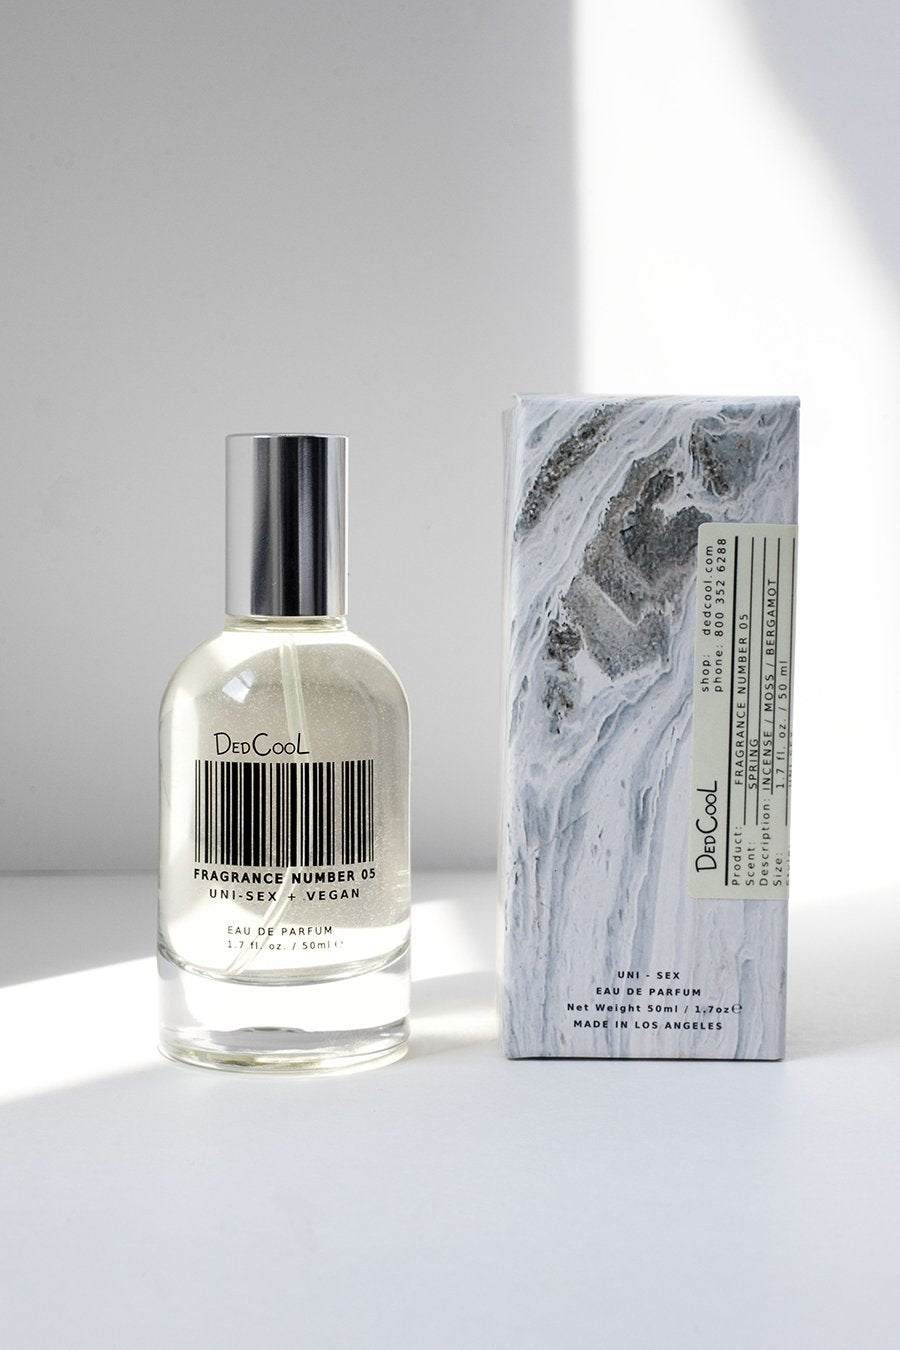 "Dedcool Fragrance 05 ""Spring"". Uni-sex, Non-Toxic, Vegan Fragrance. Made in Los Angeles. Clean, Natural, Organic, Safe."